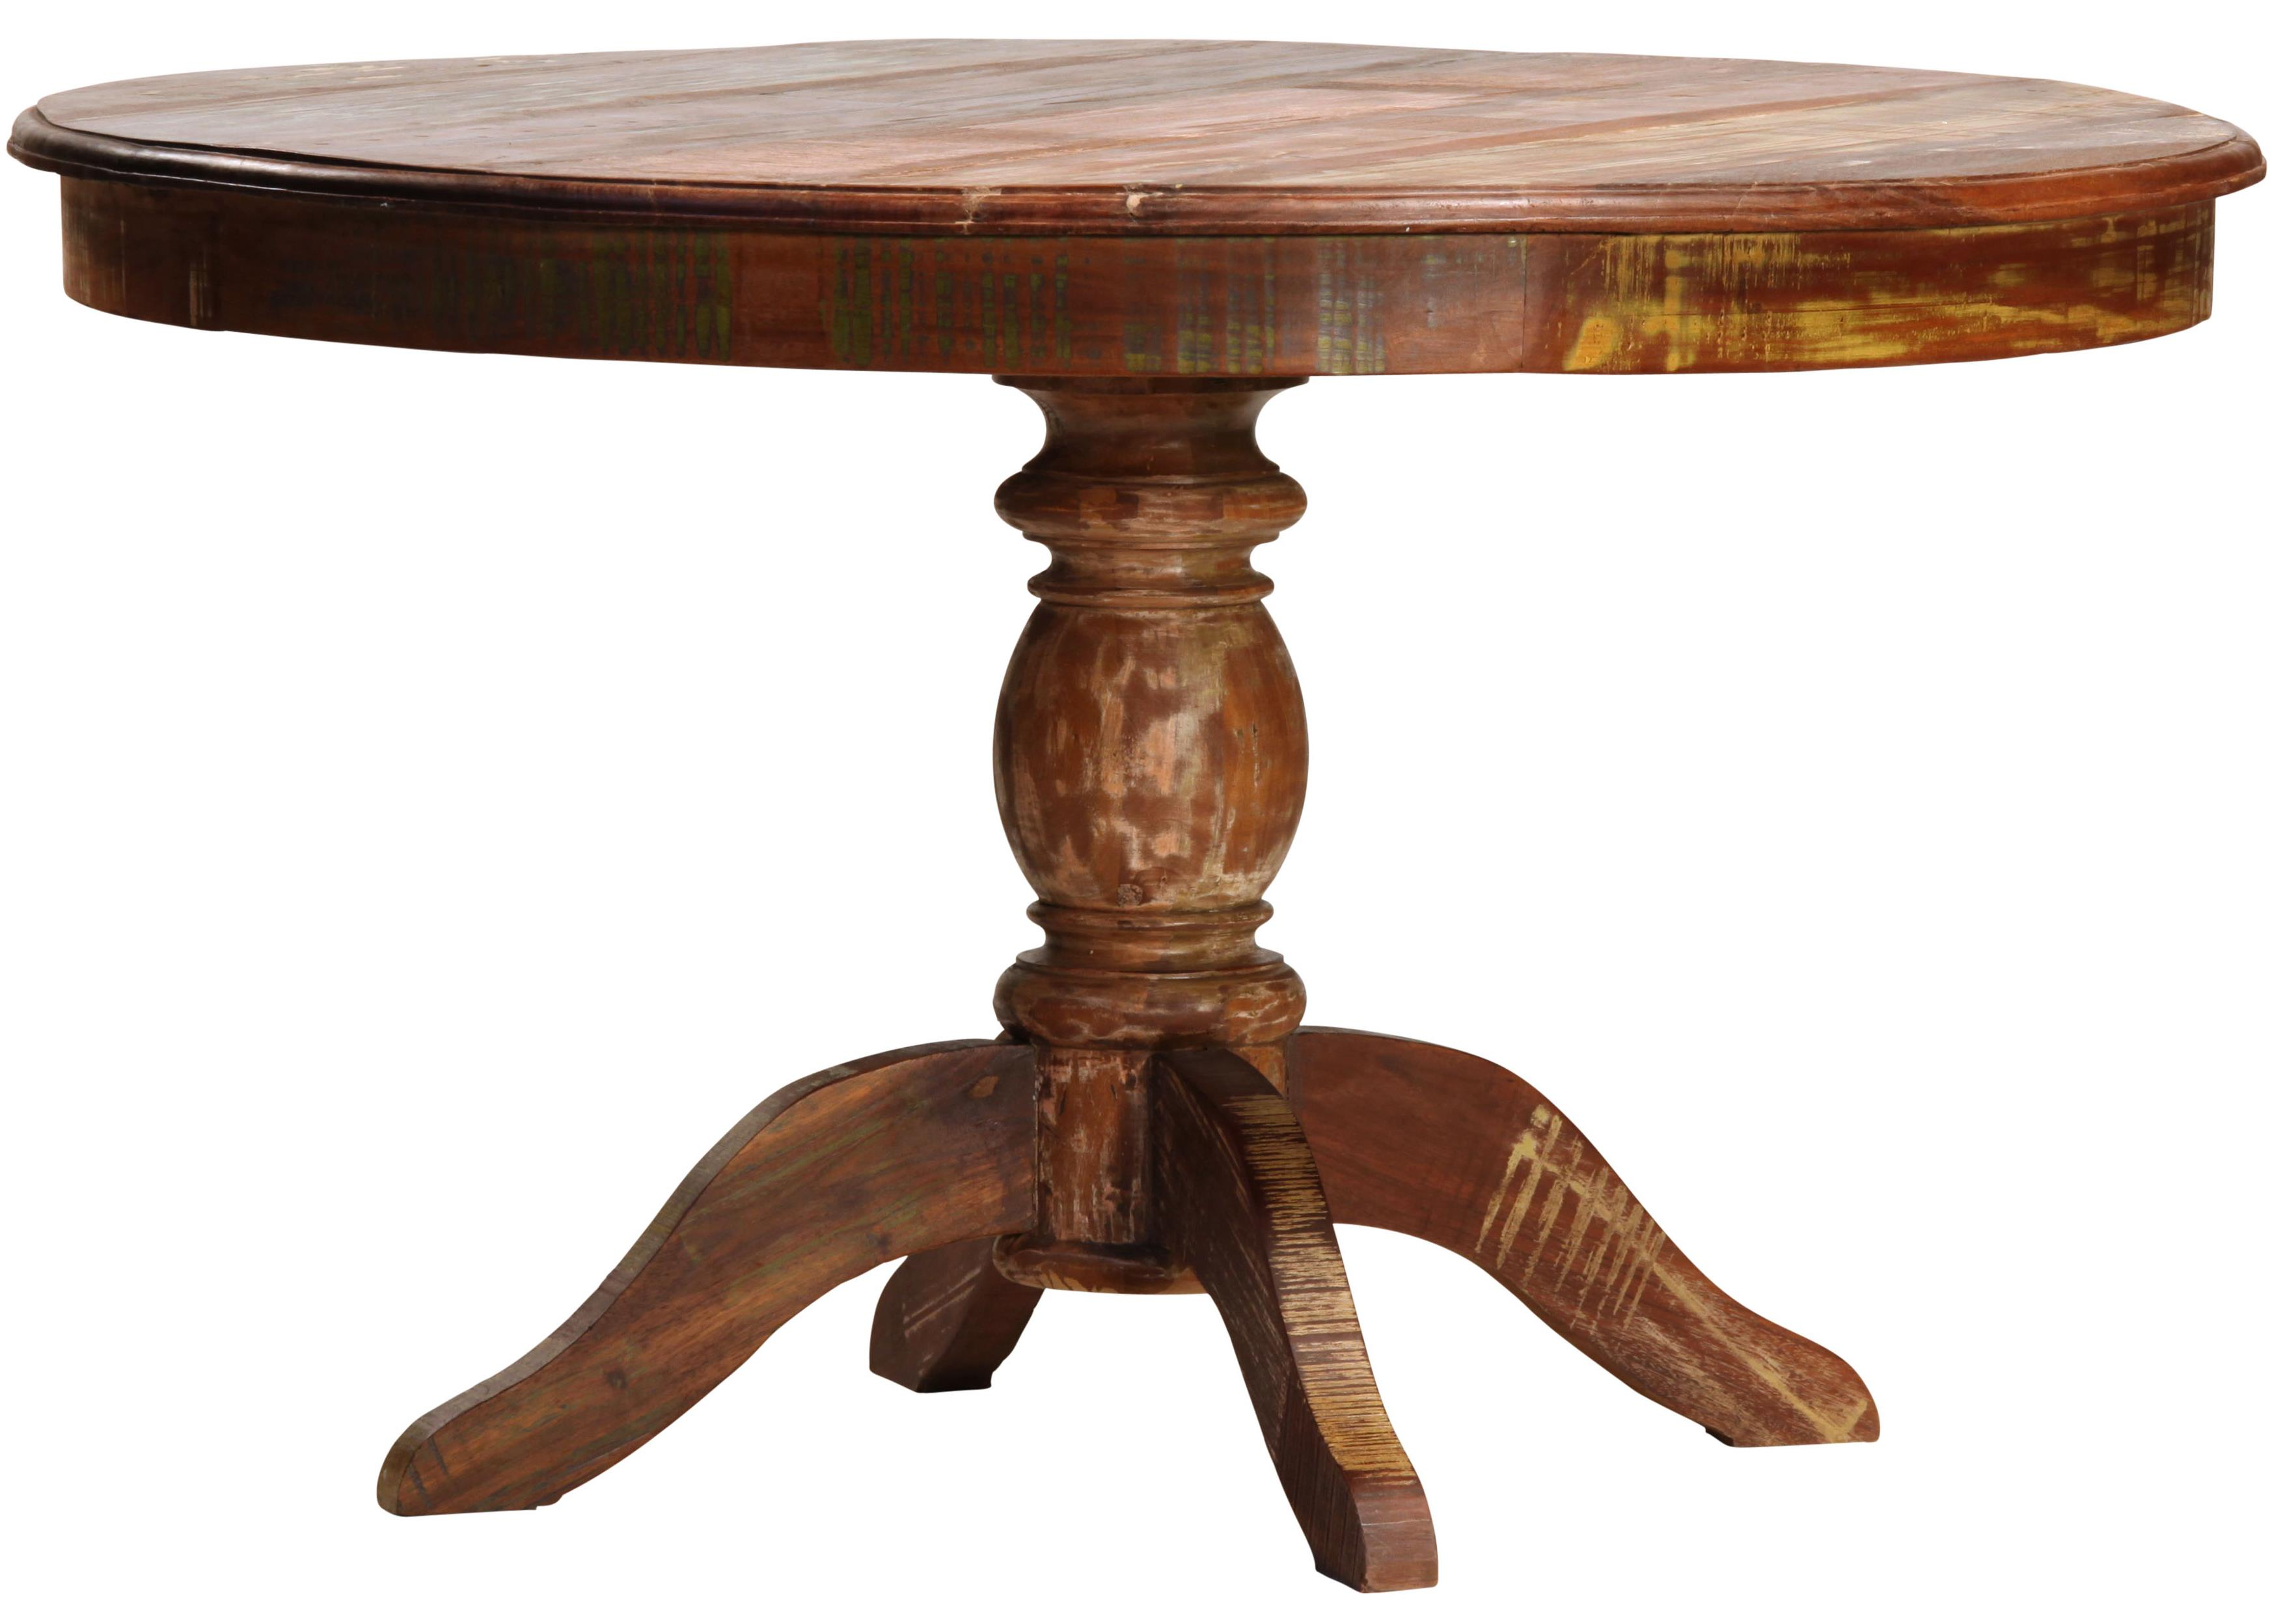 Dovetail furniture dovetail round dining table w pedestal for Dovetail furniture